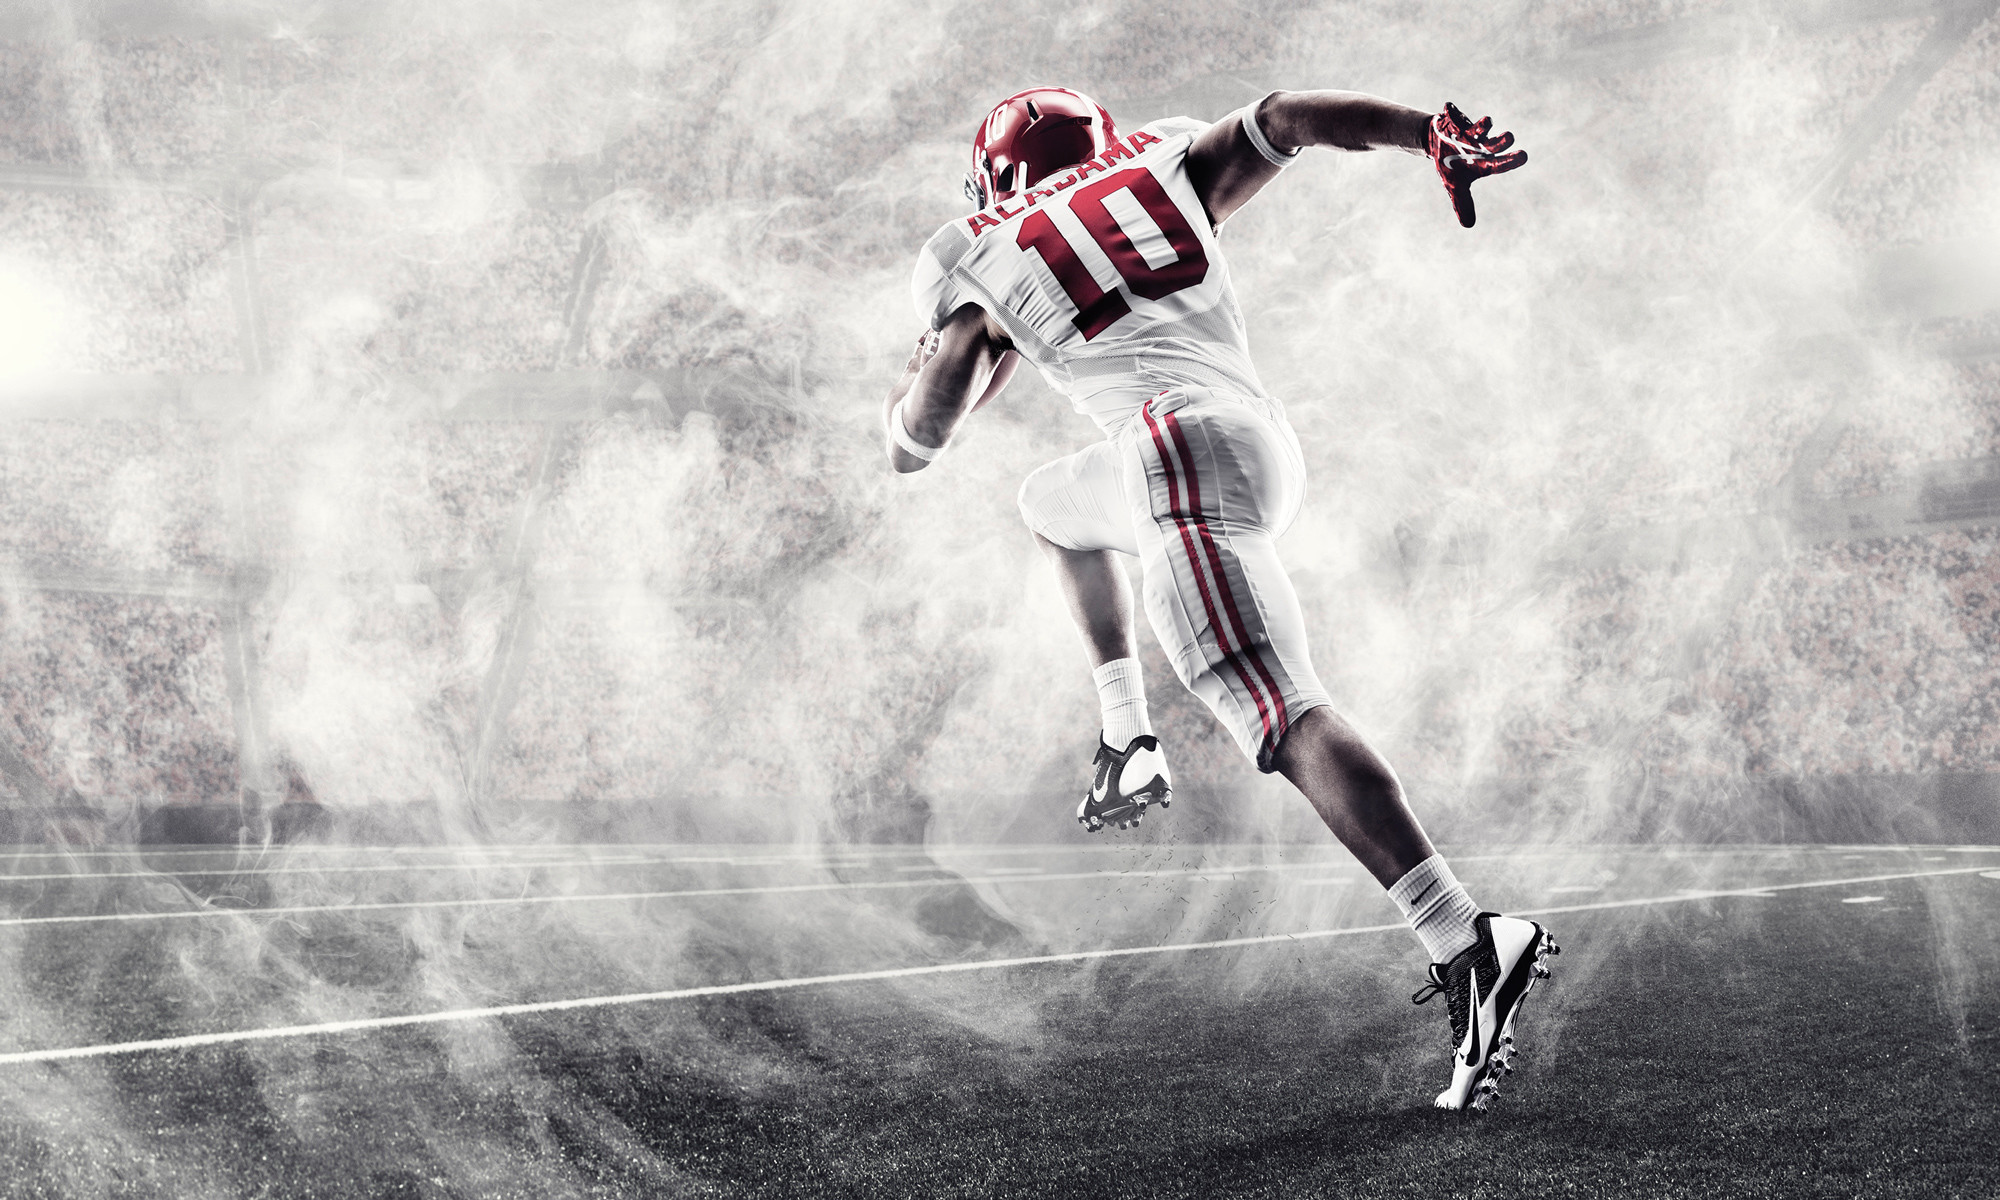 College Football Nike Wallpaper Pictures to Pin on Pinterest .